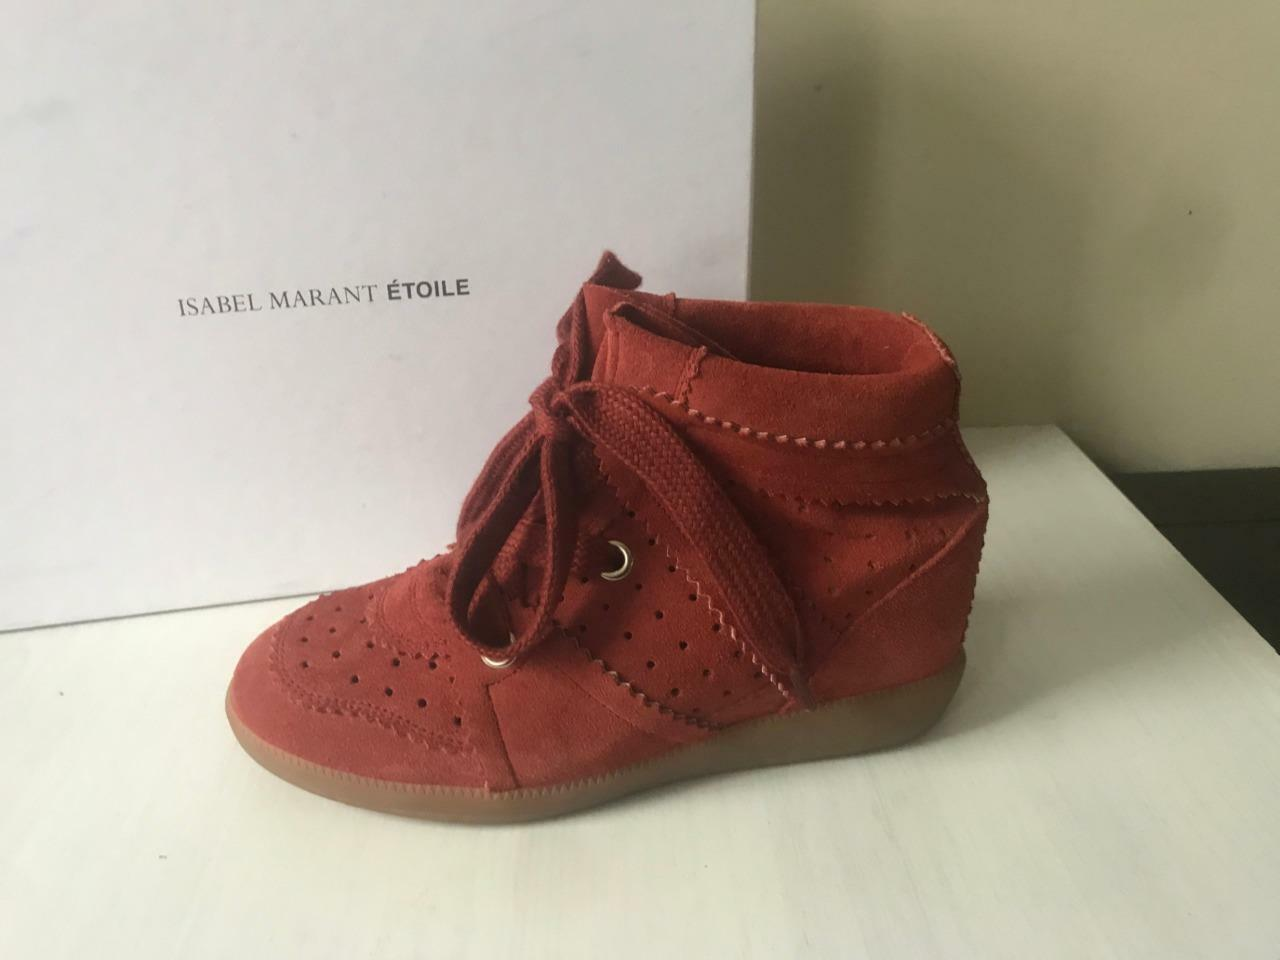 Isabel Marant Etoile Etoile Etoile Bobby Suede Wedge Sneaker Ankle Bootie Boots shoes  600 a93952